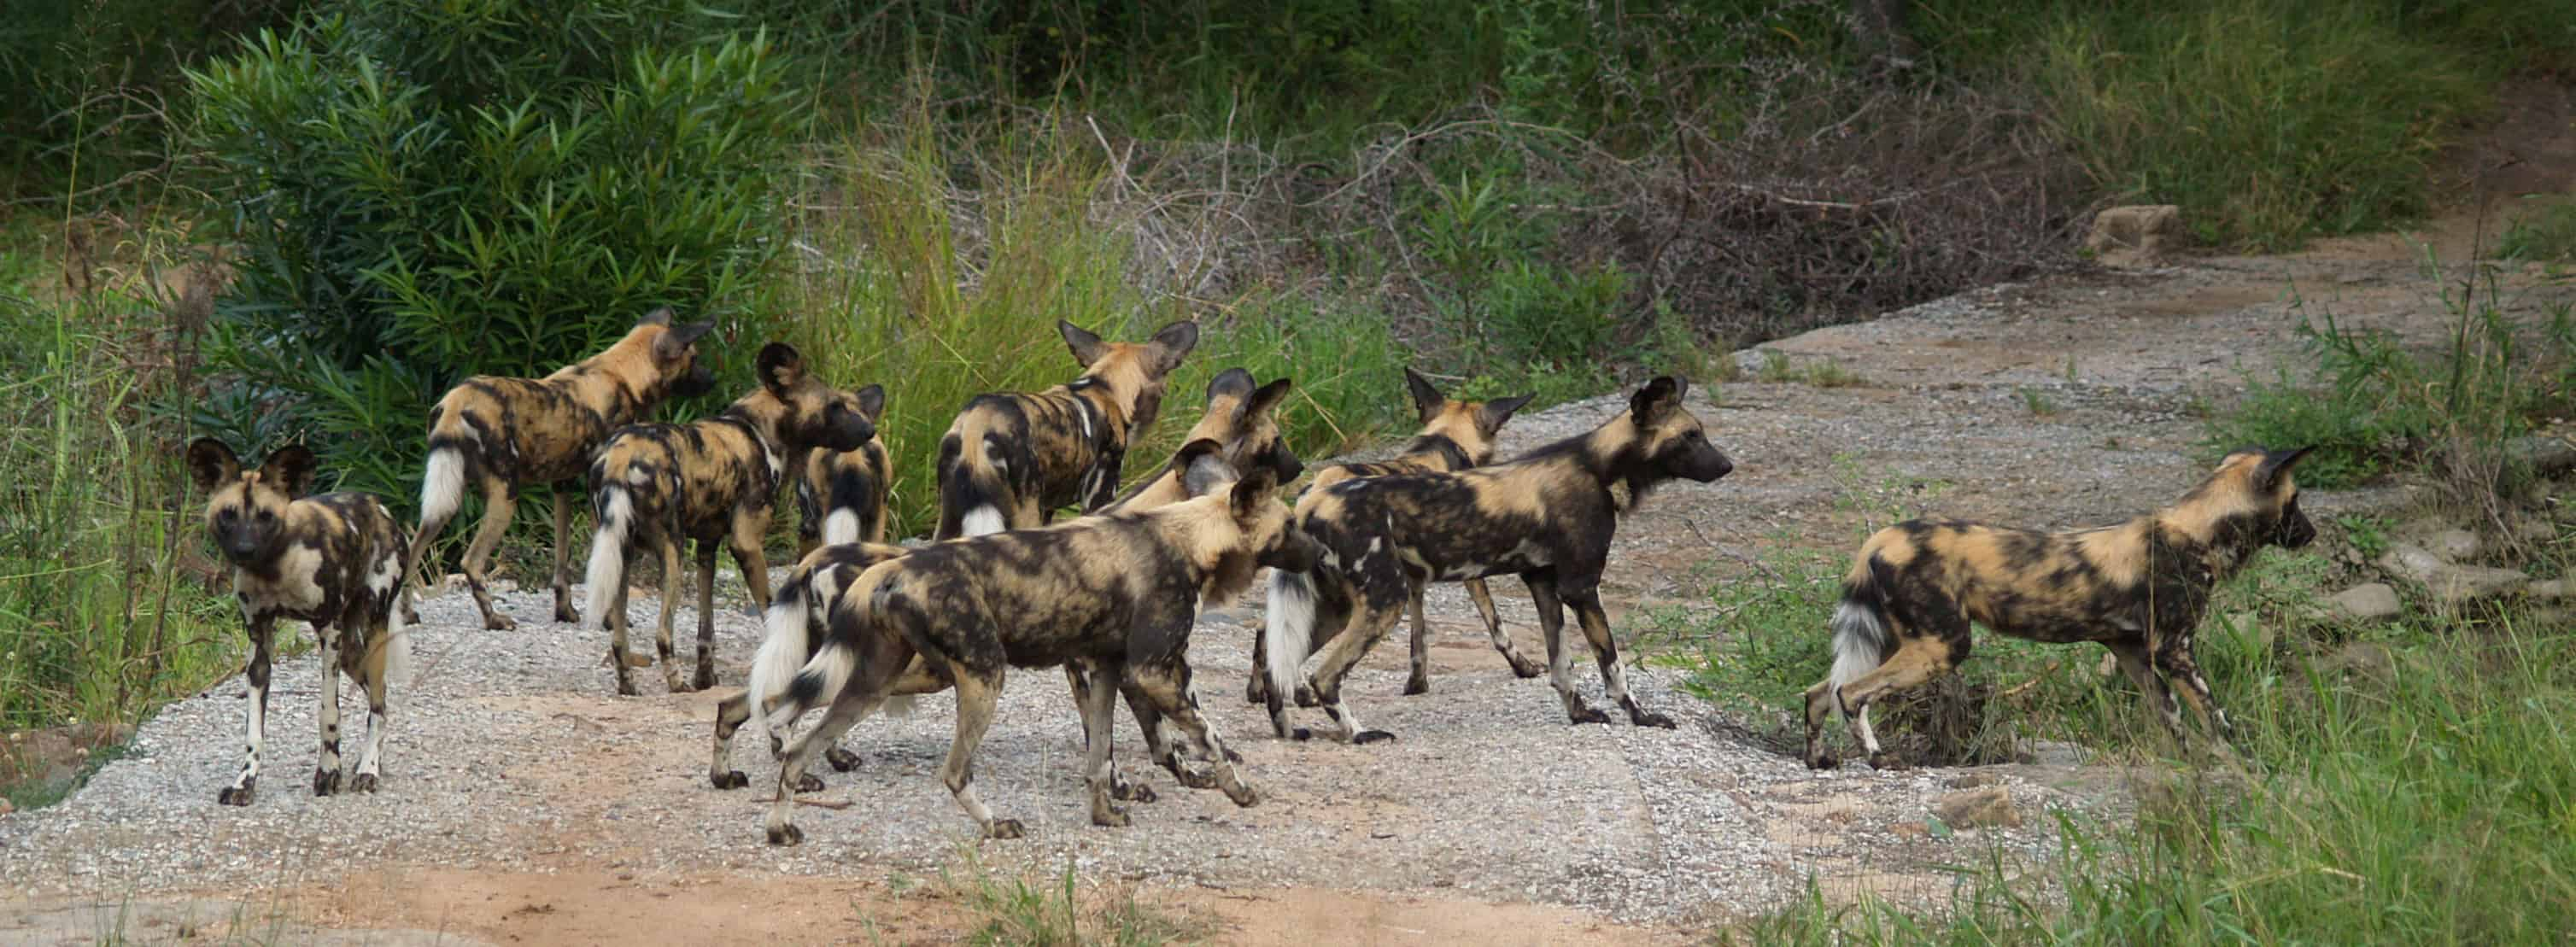 Do African Dogs live in groups?